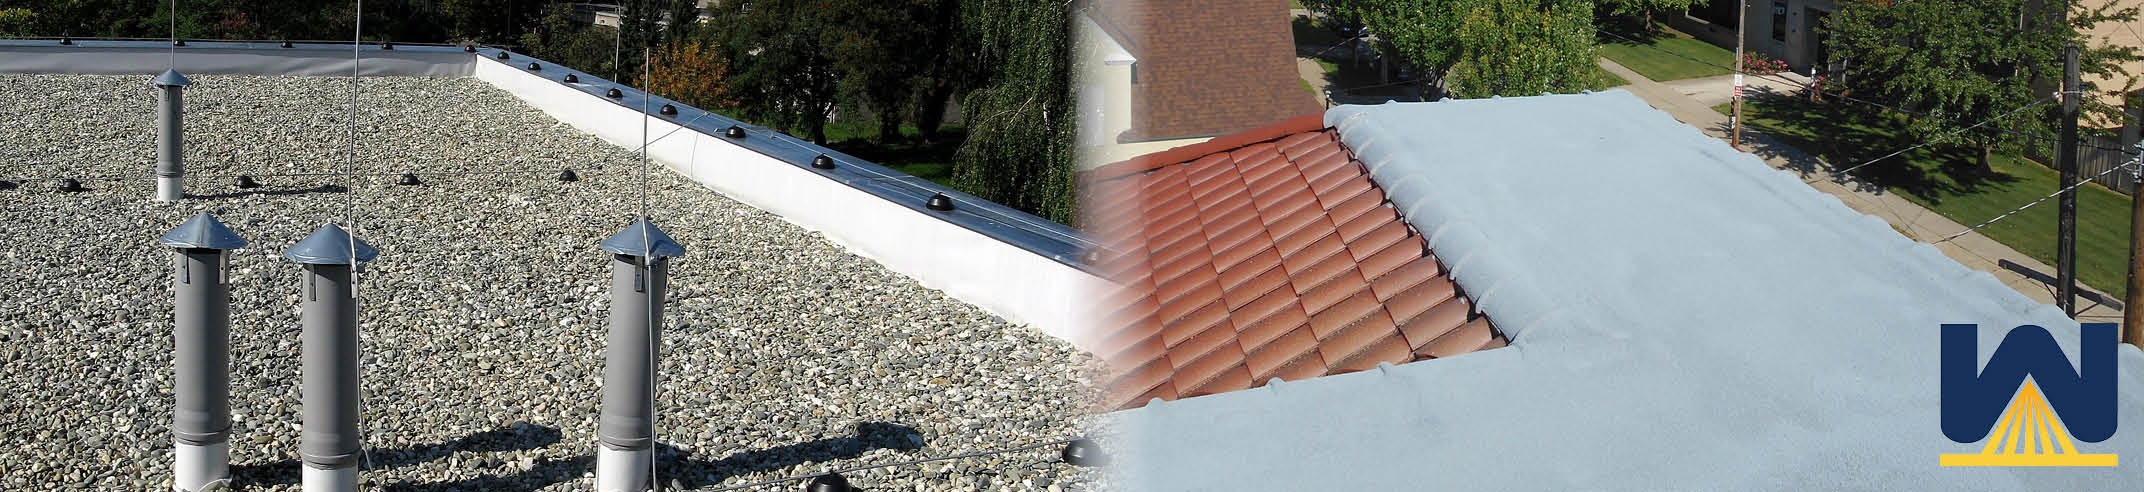 Spf Vs Built Up Roofing Which Is Best For A Flat Roof